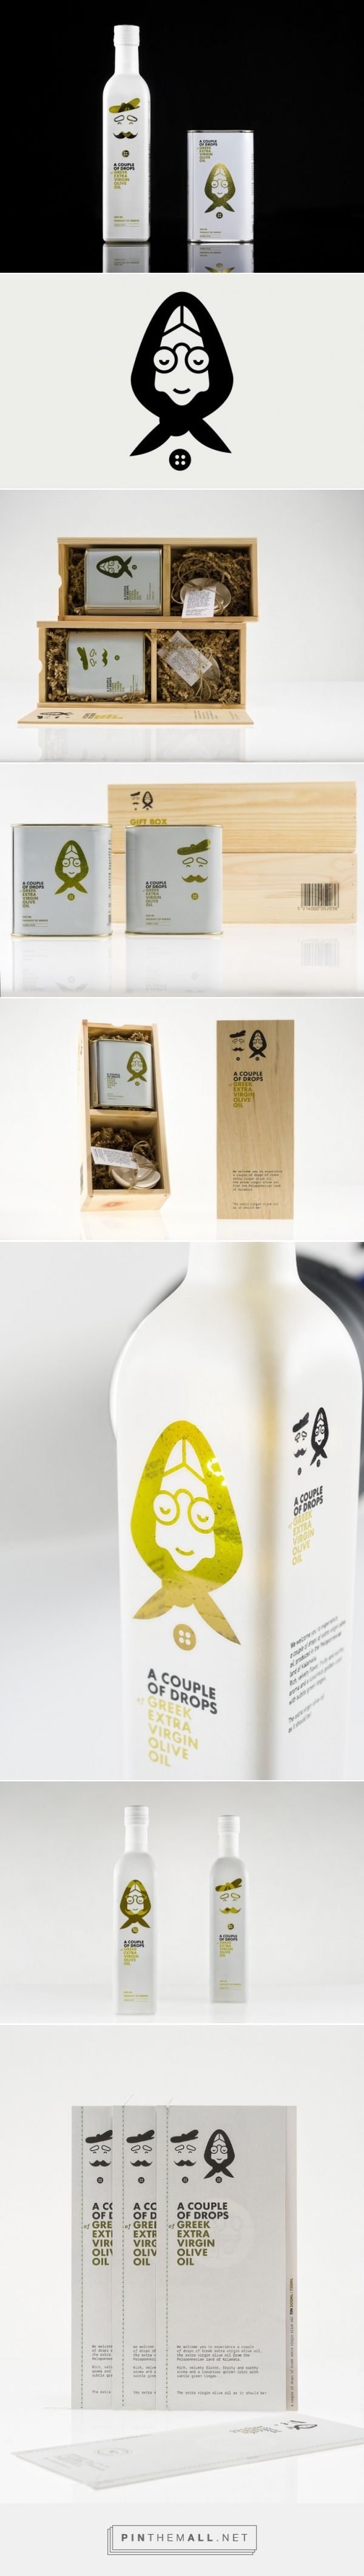 Beetroot: Oil's Well! by Beetroot Design Group curated by Packaging Diva PD. Cute packaging makes me want to buy this : ) PD